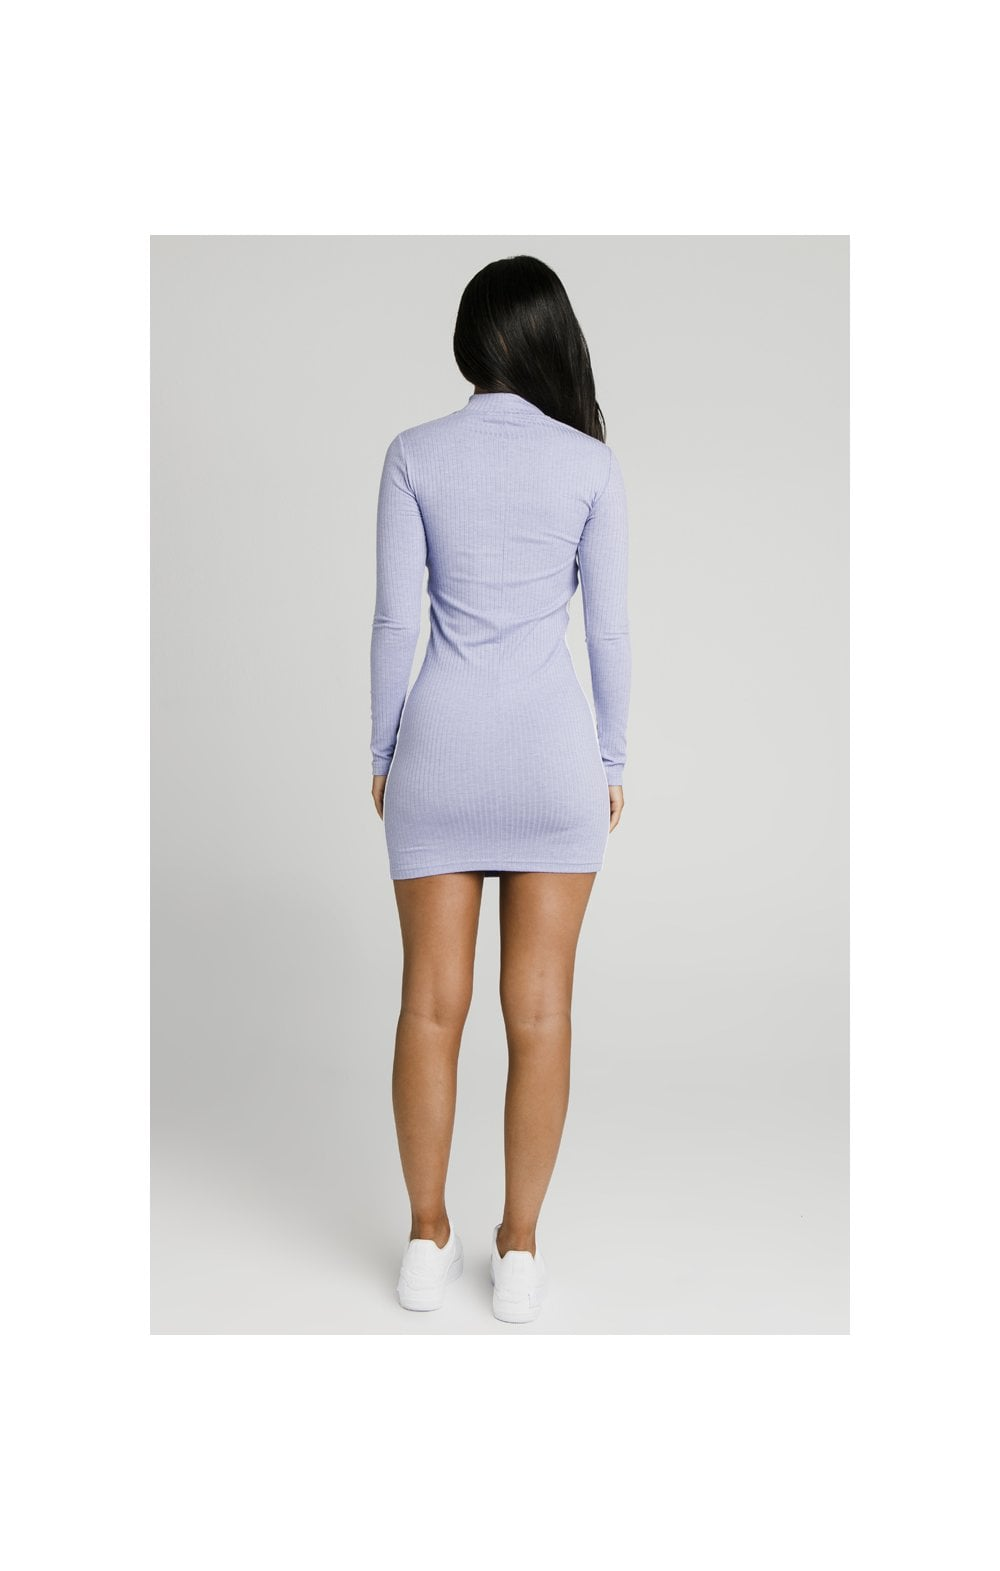 Load image into Gallery viewer, SikSilk Violet Rib Bodycon Dress - Violet (5)